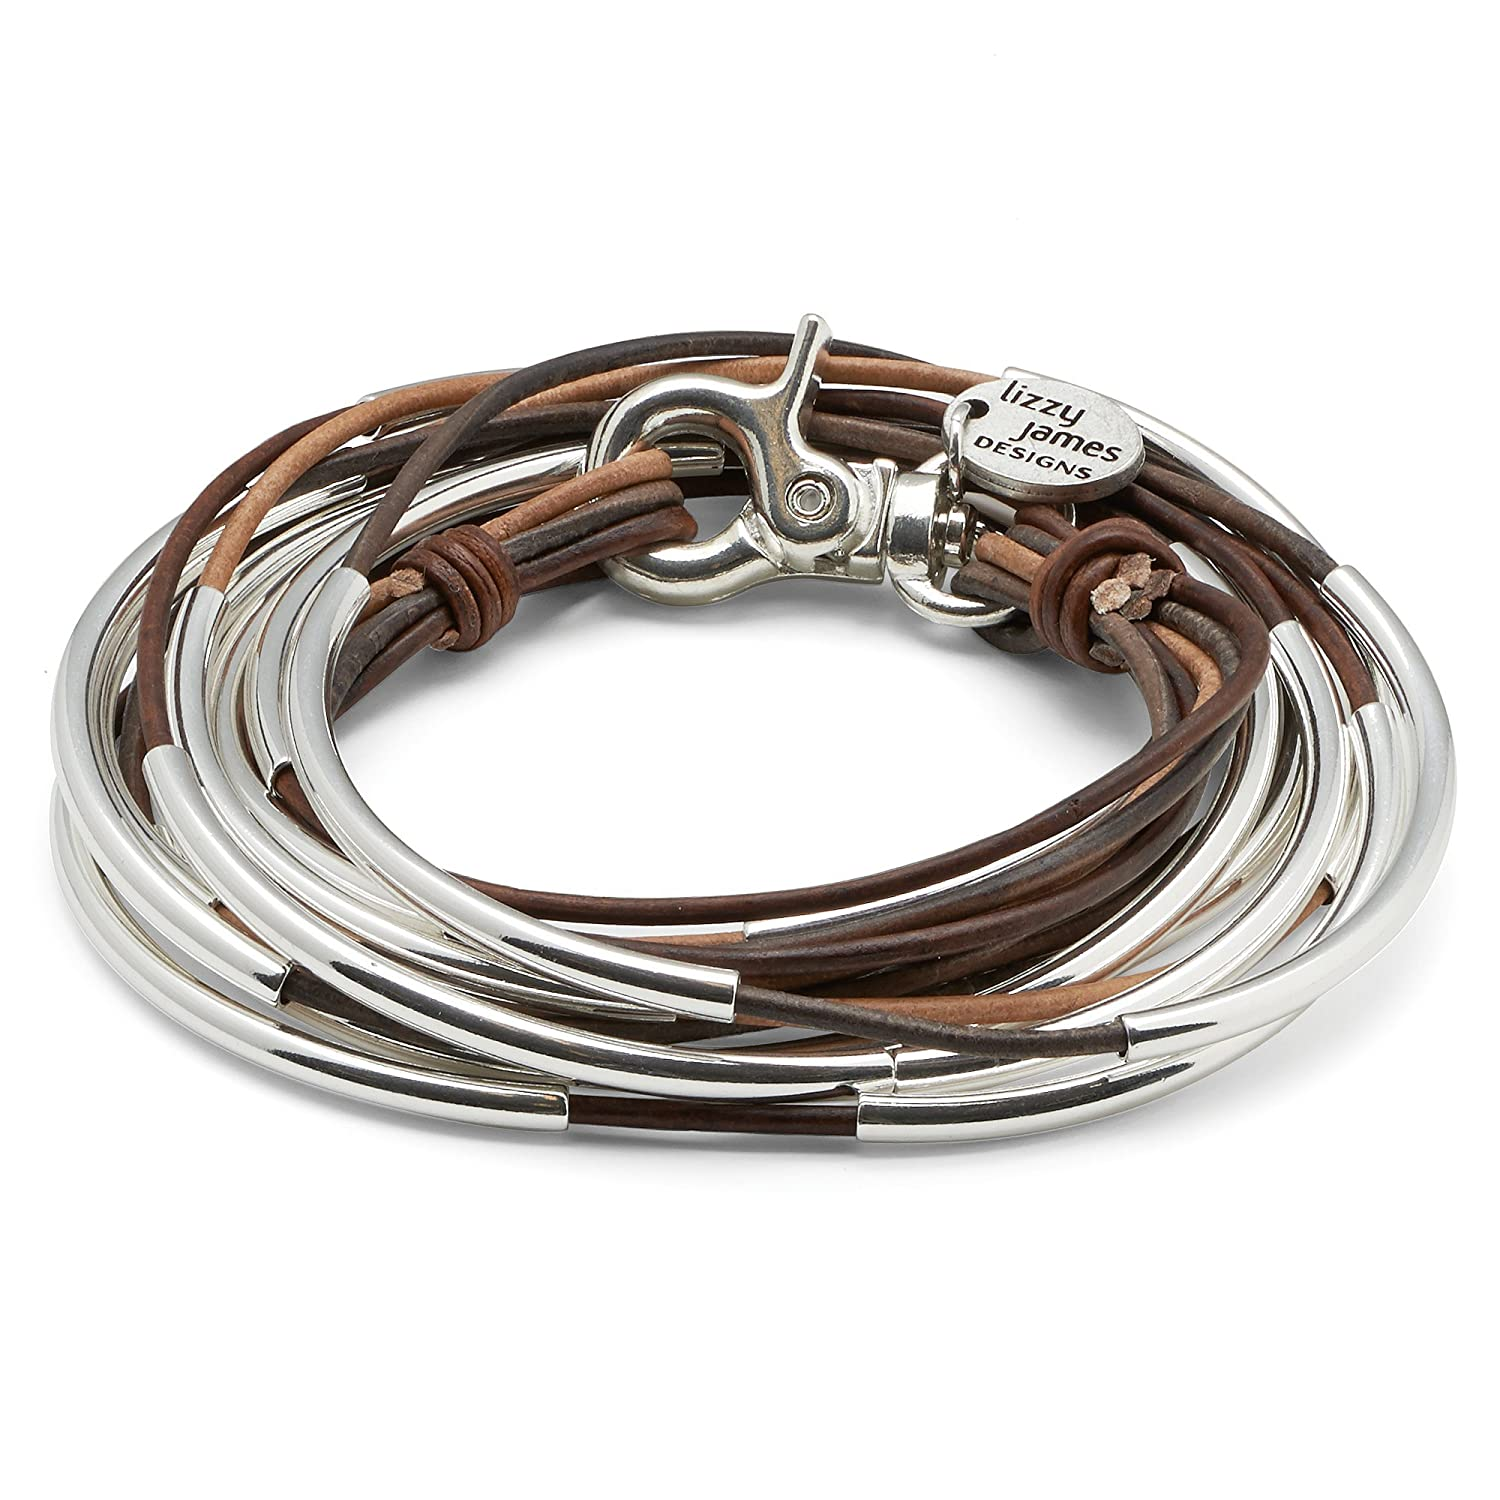 Lizzy Too 5 Strand Brown Silverplate Bracelet Necklace with Tricolor Brown Leather Wrap by Lizzy James 7582581253